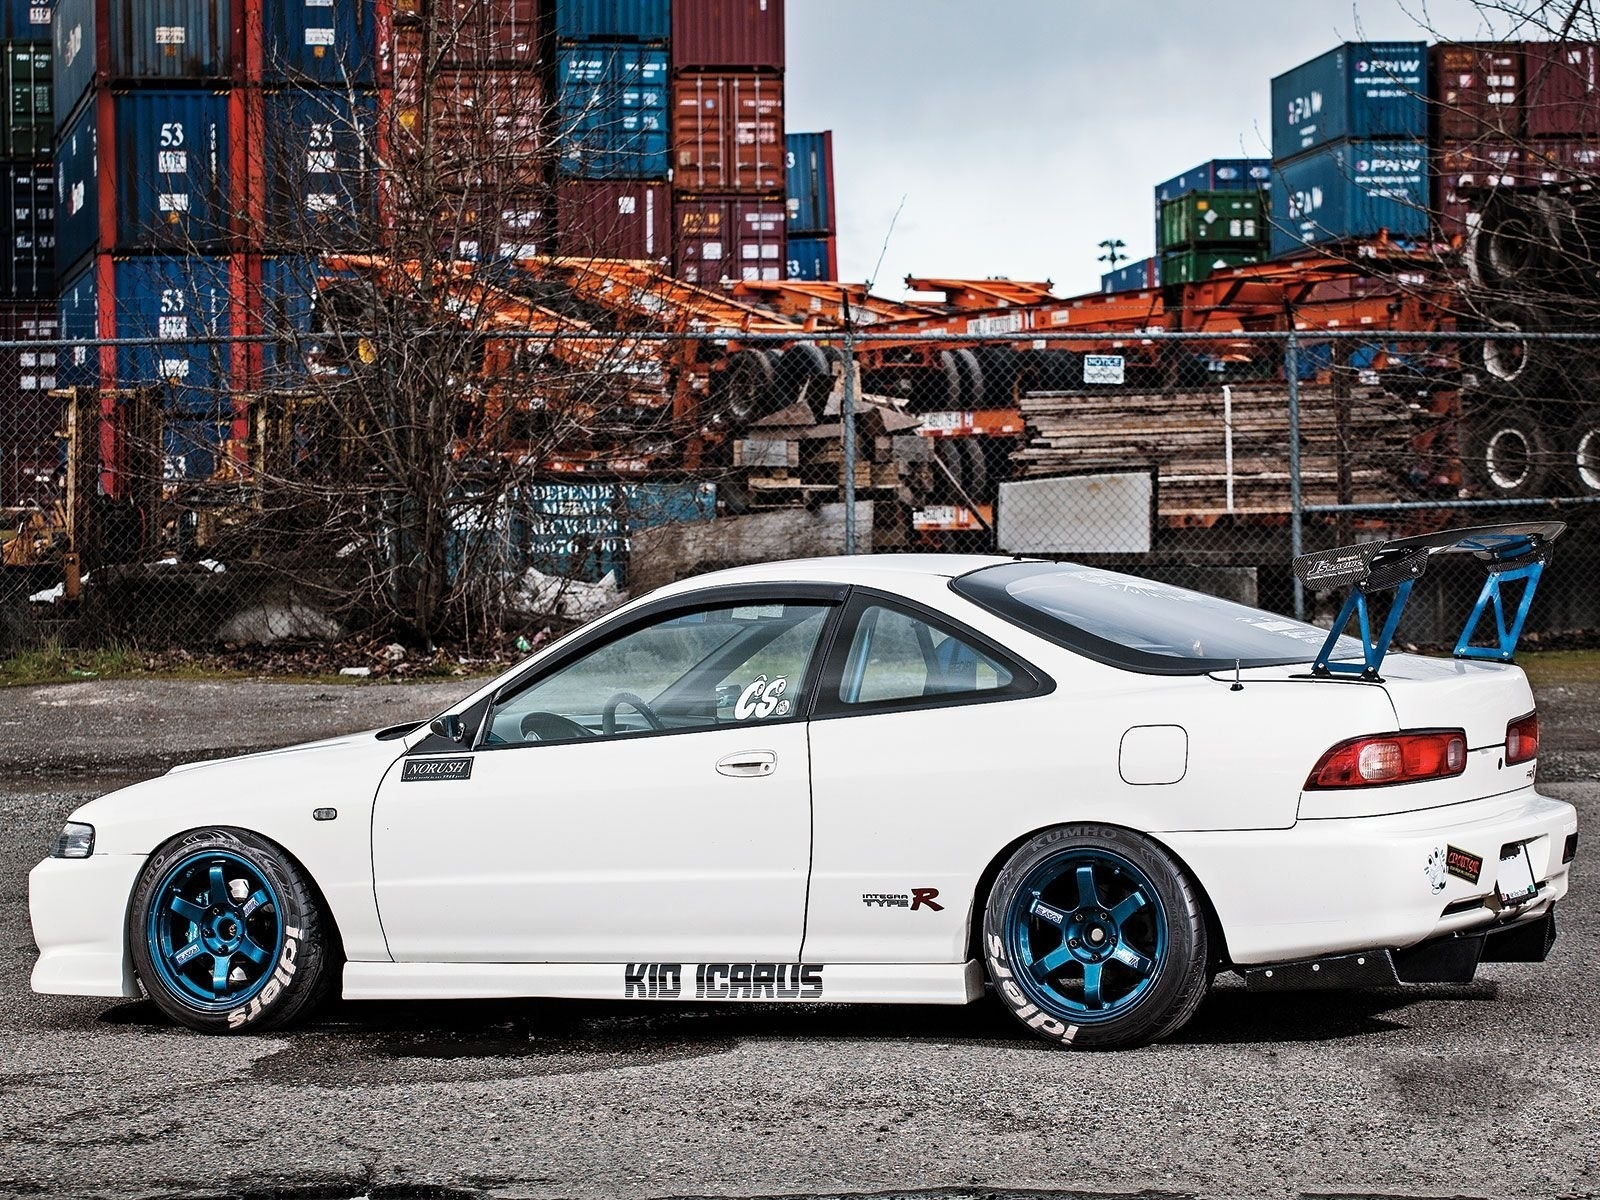 wallpaper.wiki-acura-integra-type-r-wallpaper-pic-wpc0014313